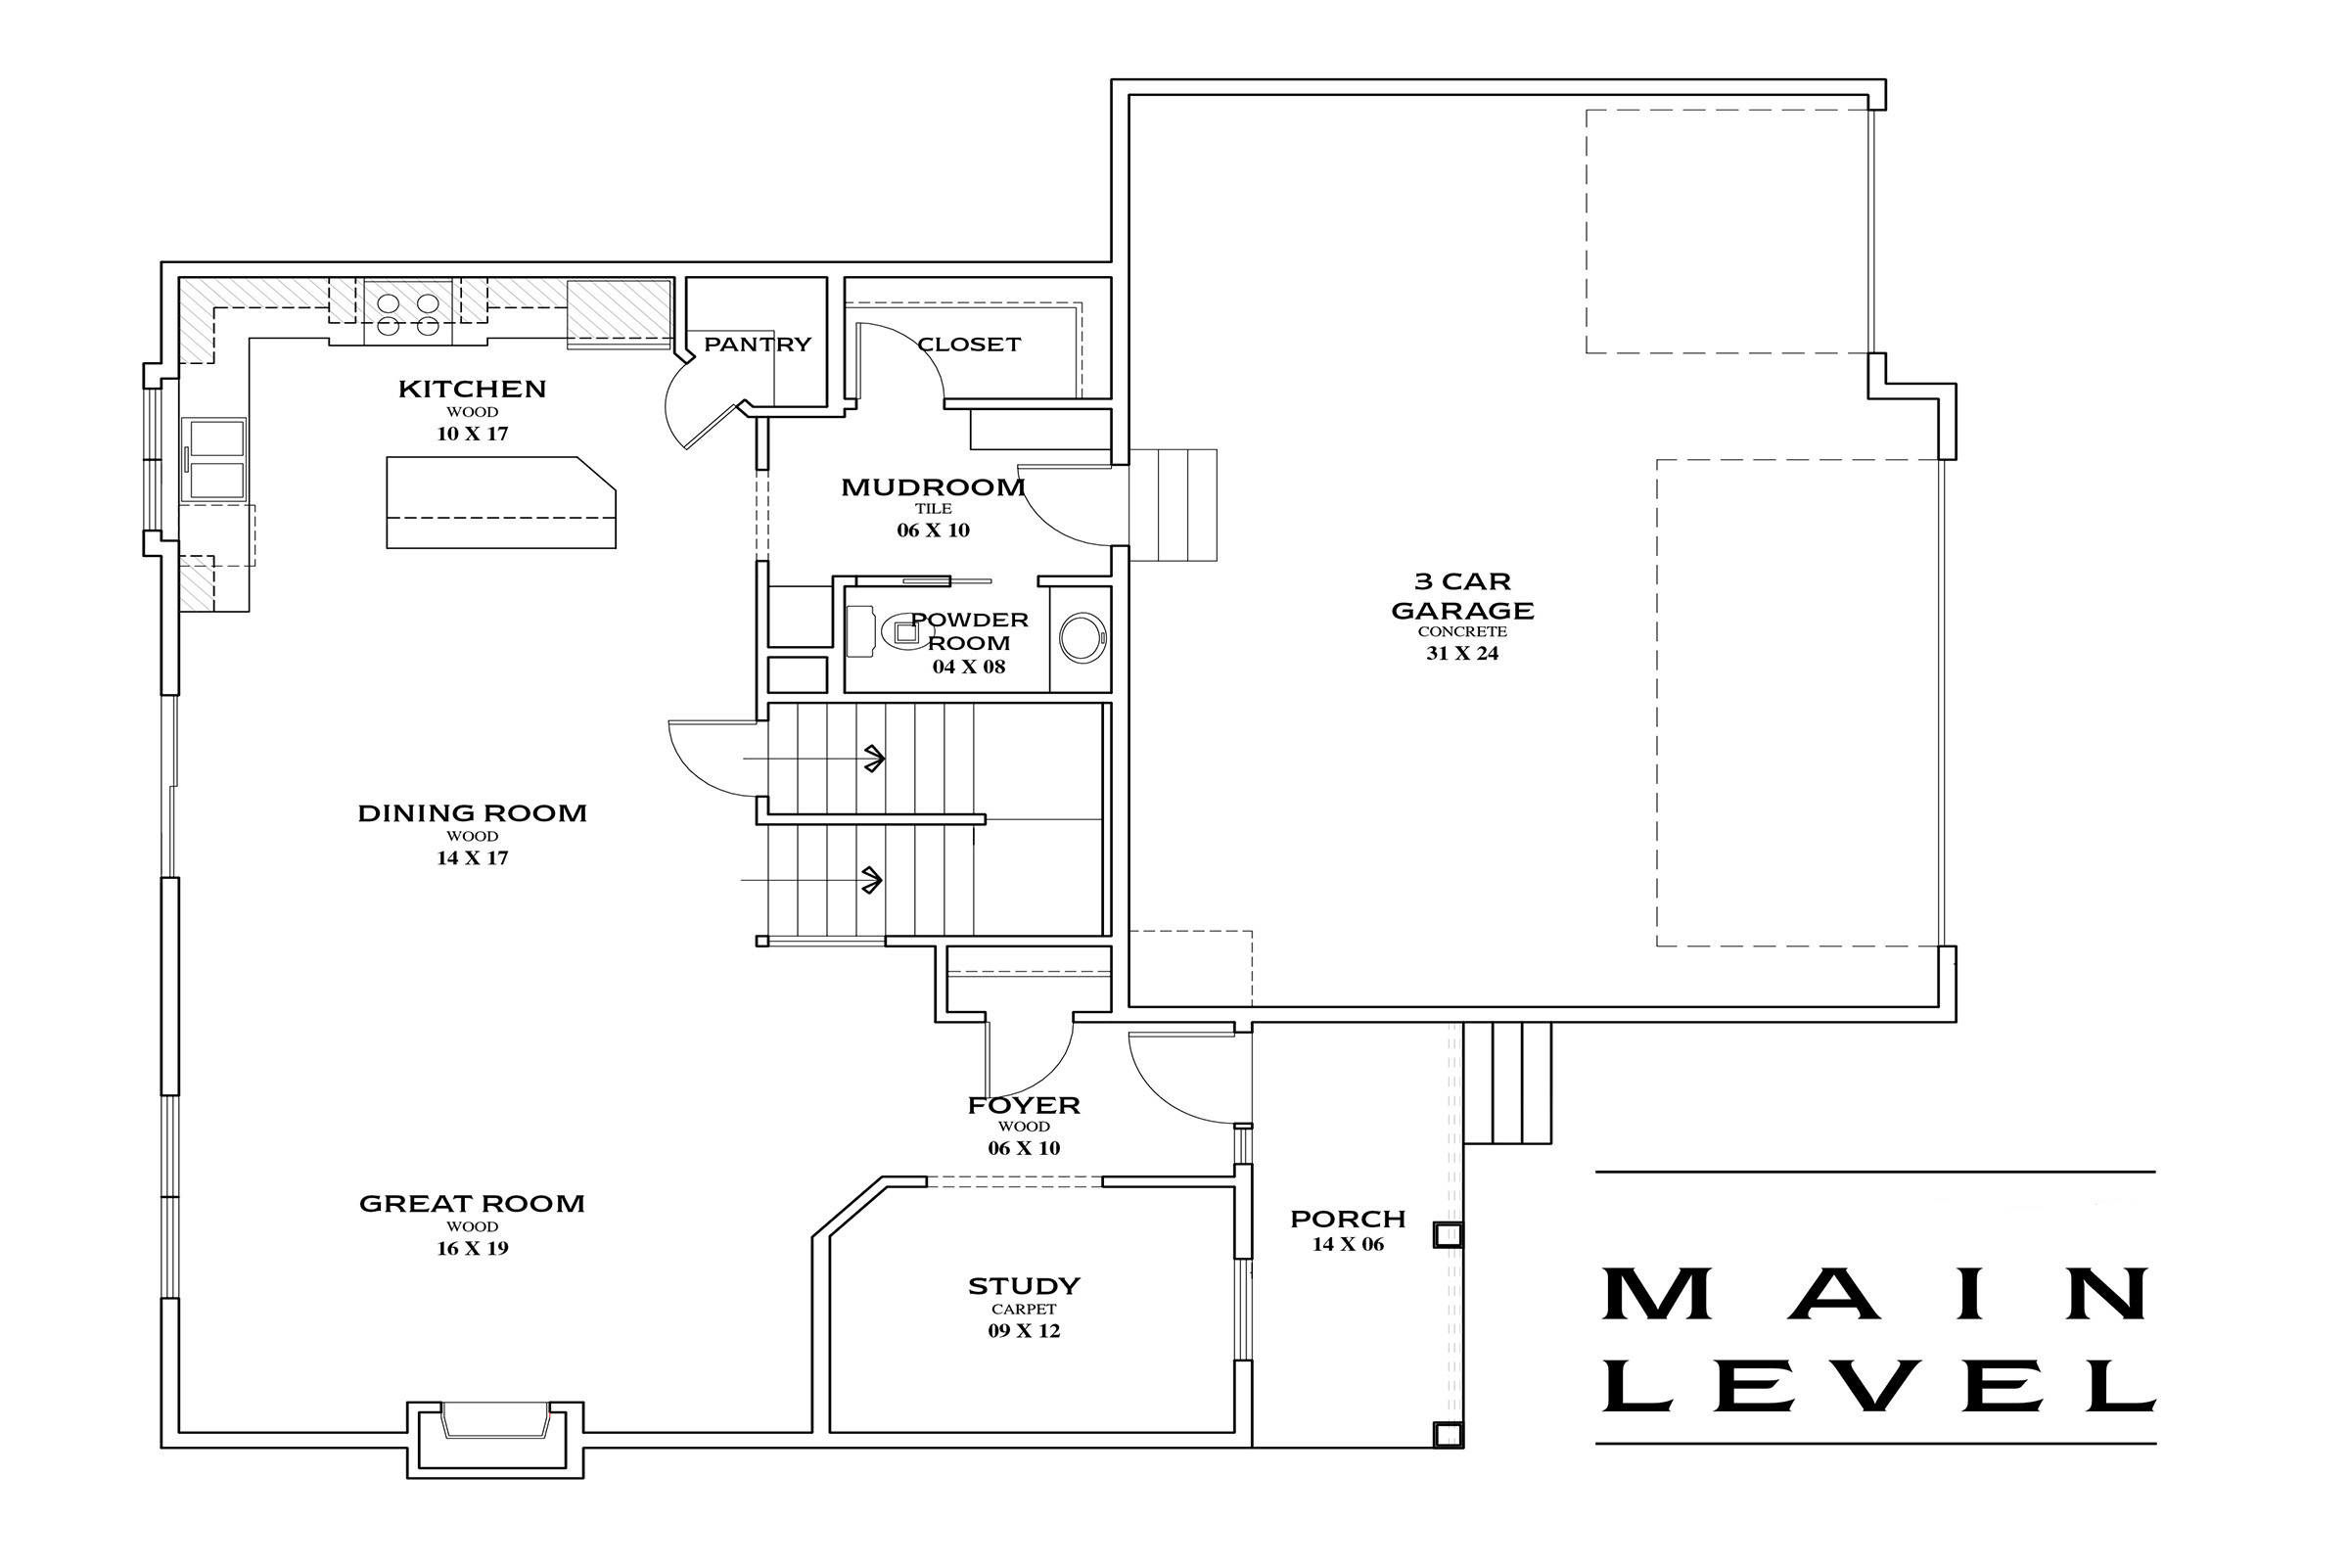 TJB Maddy Home Plan #360 Main Floor Plan